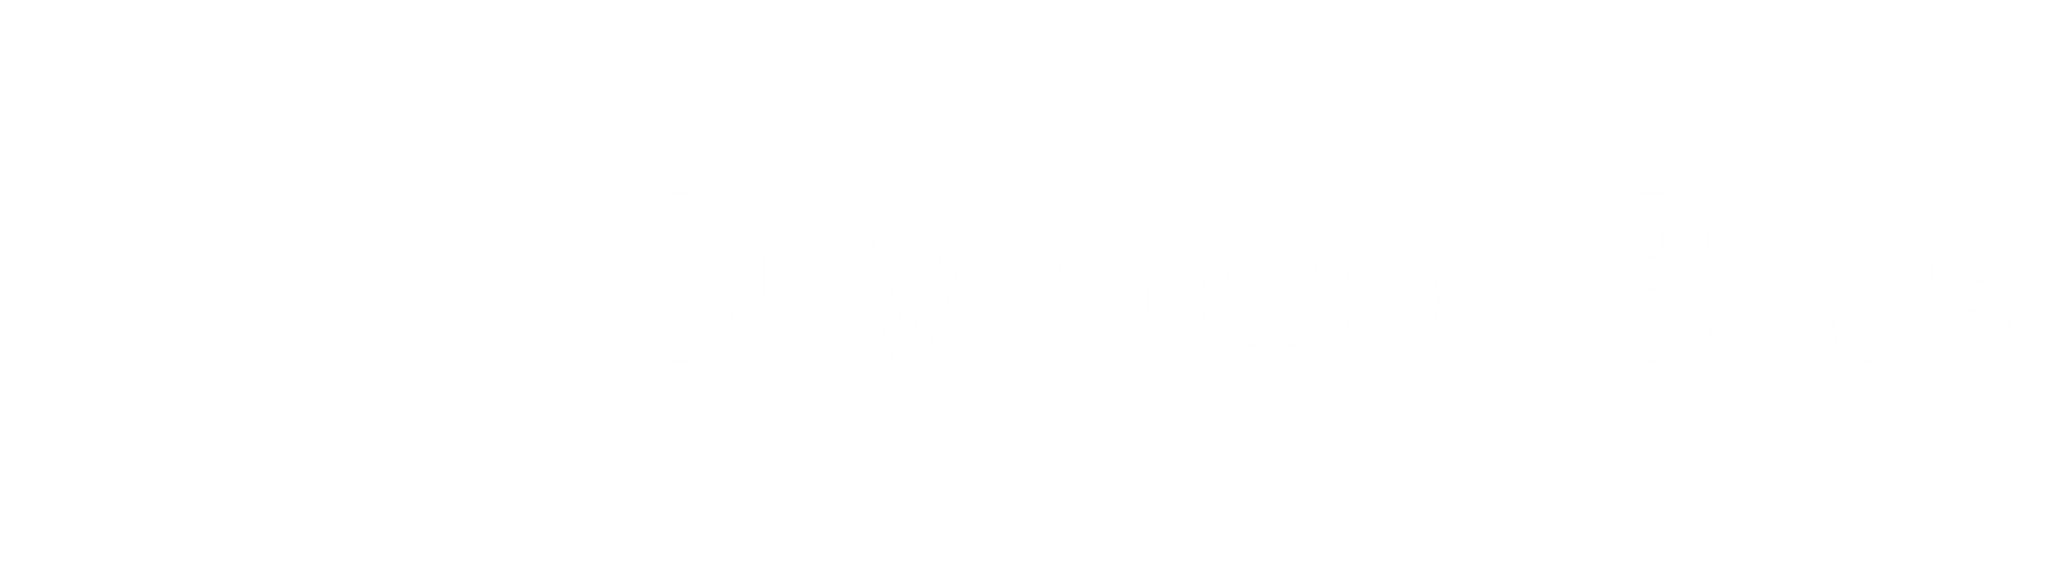 Divided Bits